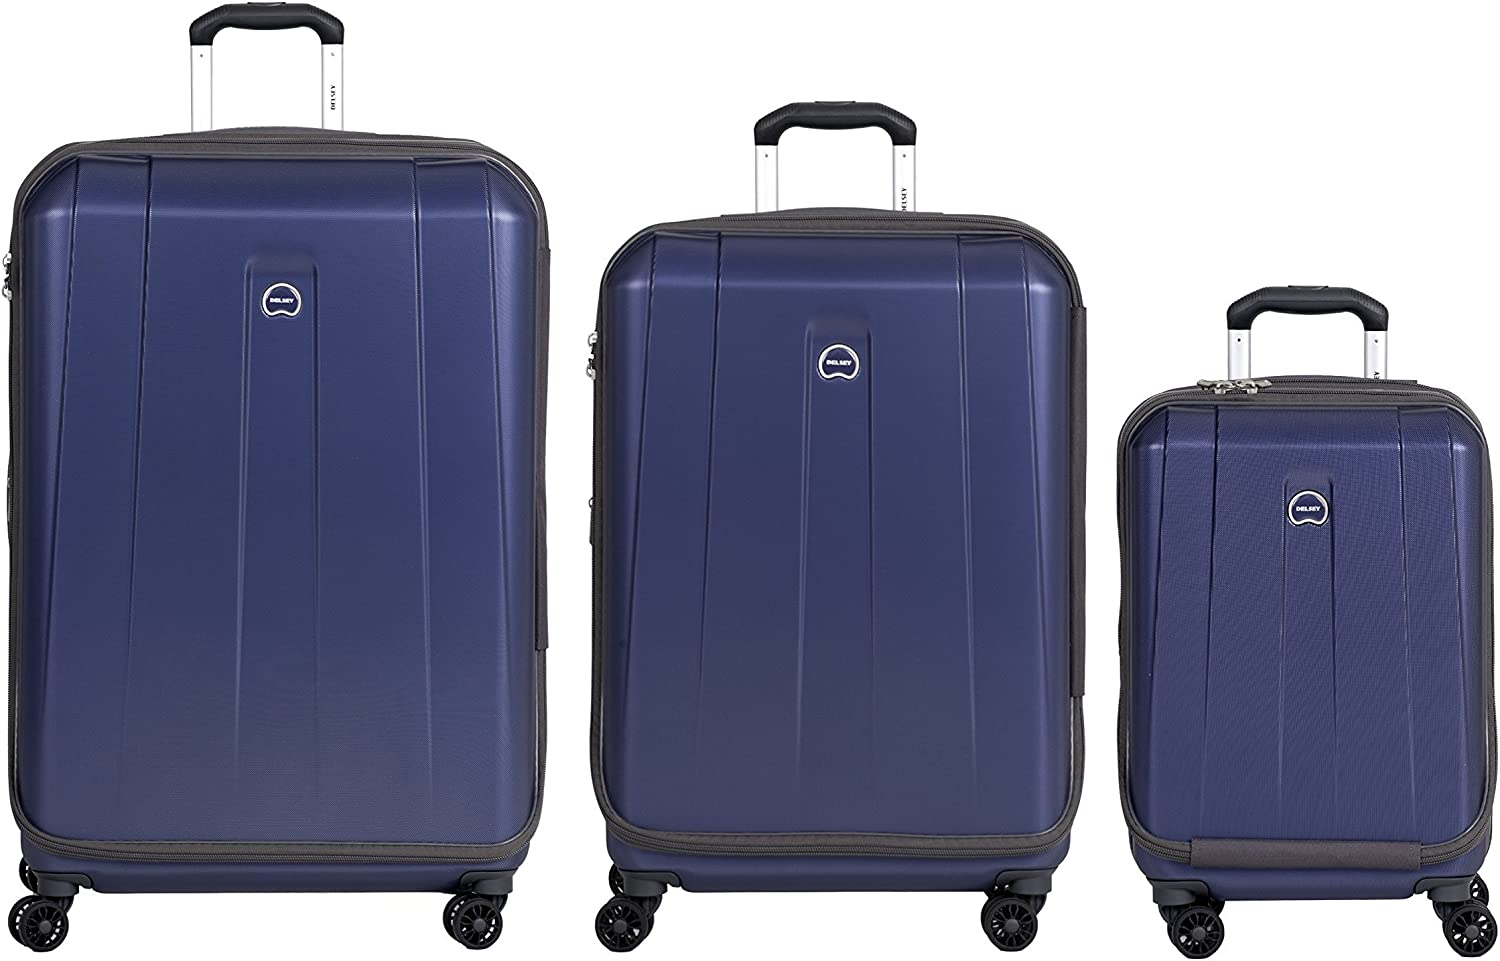 DELSEY Paris Delsey Luggage Shadow 3.0 Expand Hardside 21x25x29 Inches Luggage Set Navy Blue